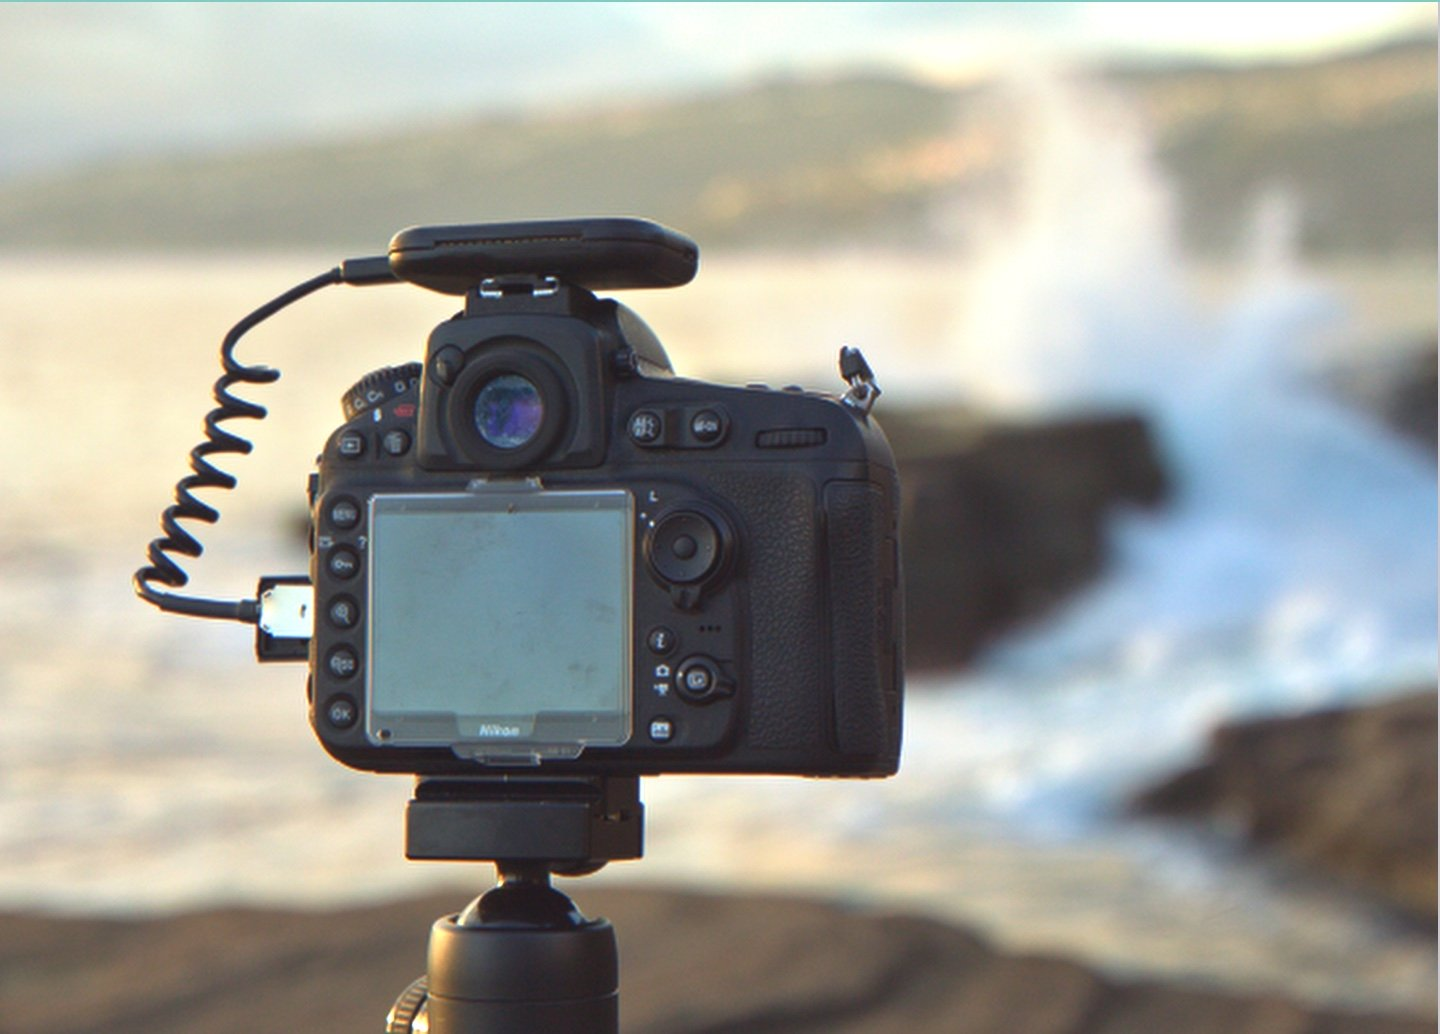 Meet Arsenal, the intelligent assistant for your DSLR or mirrorless camera.